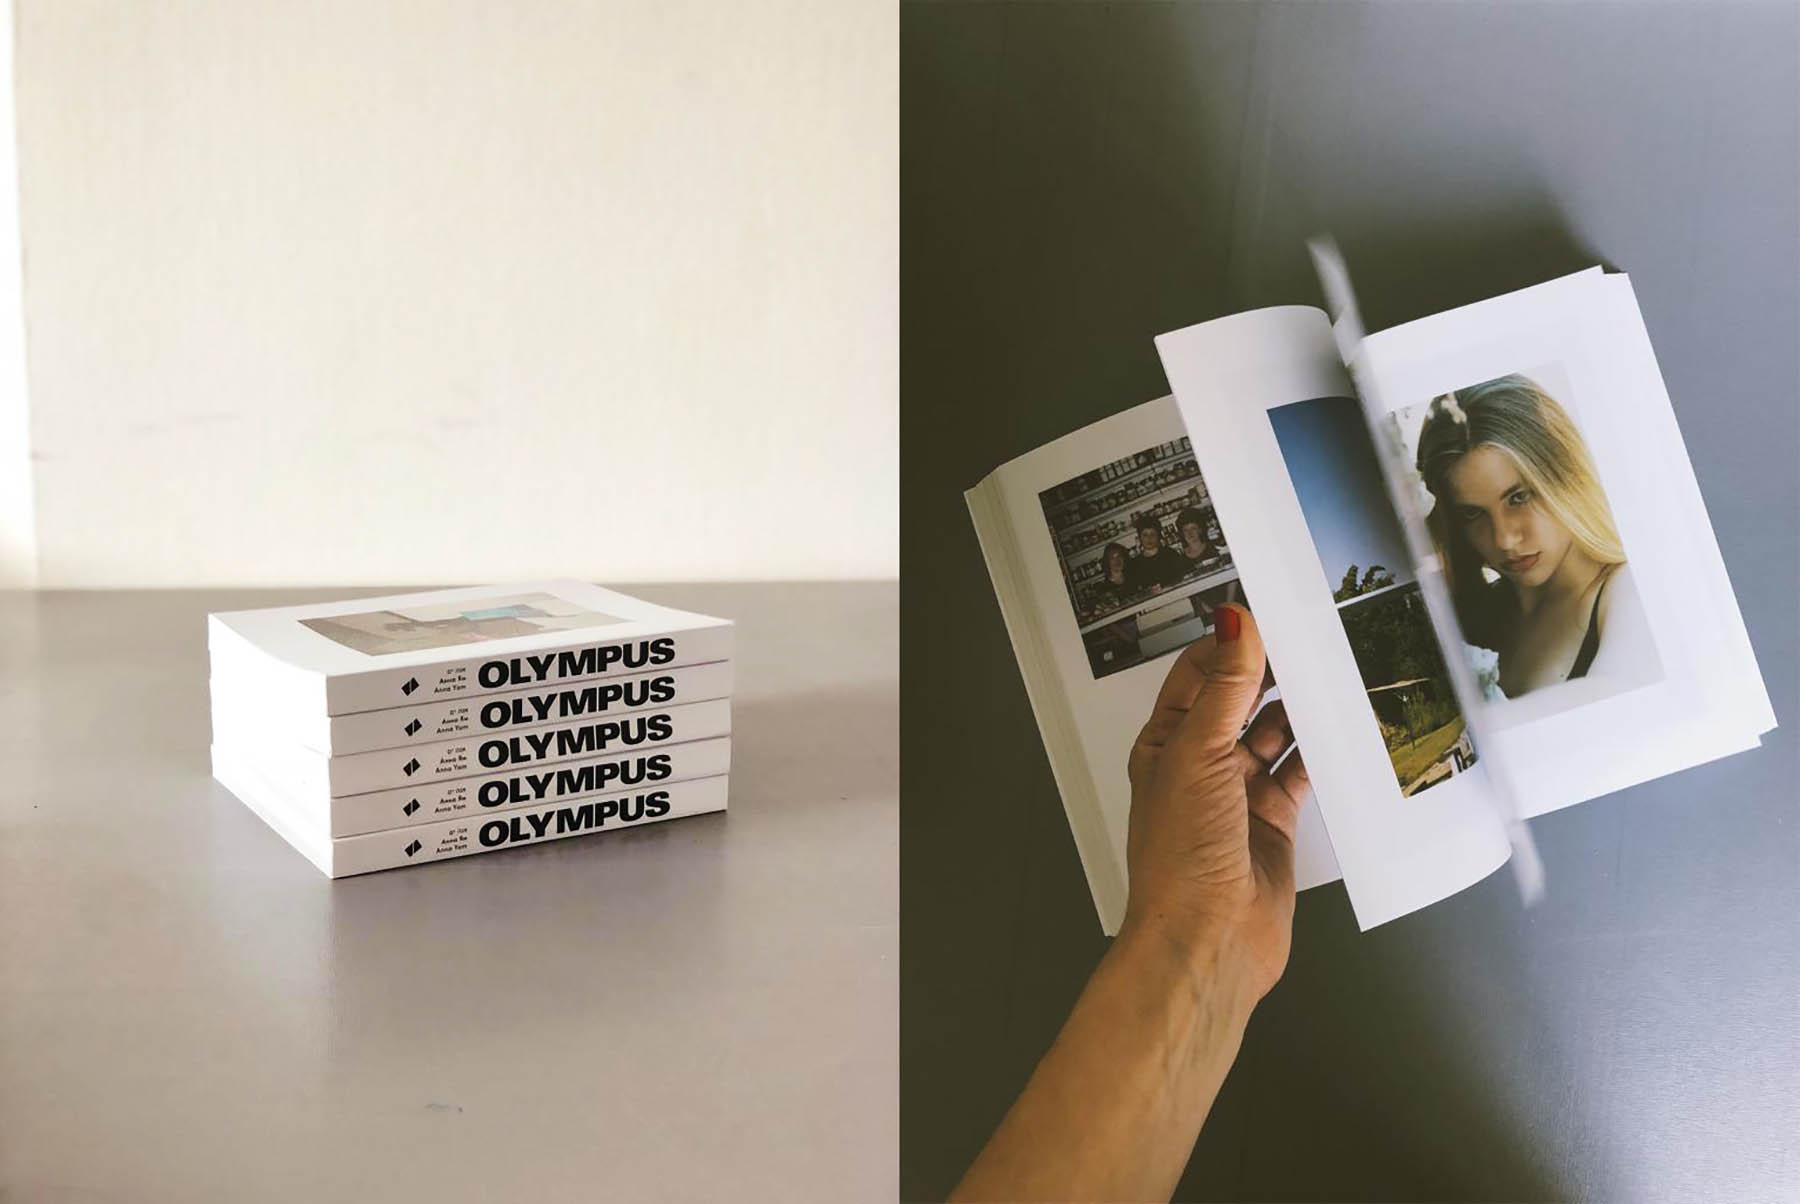 Anna Yam, 'Olympus' Exhibition Catalogue, published alongside solo exhibition by the same name, Ashdod Museum of Art, 2019